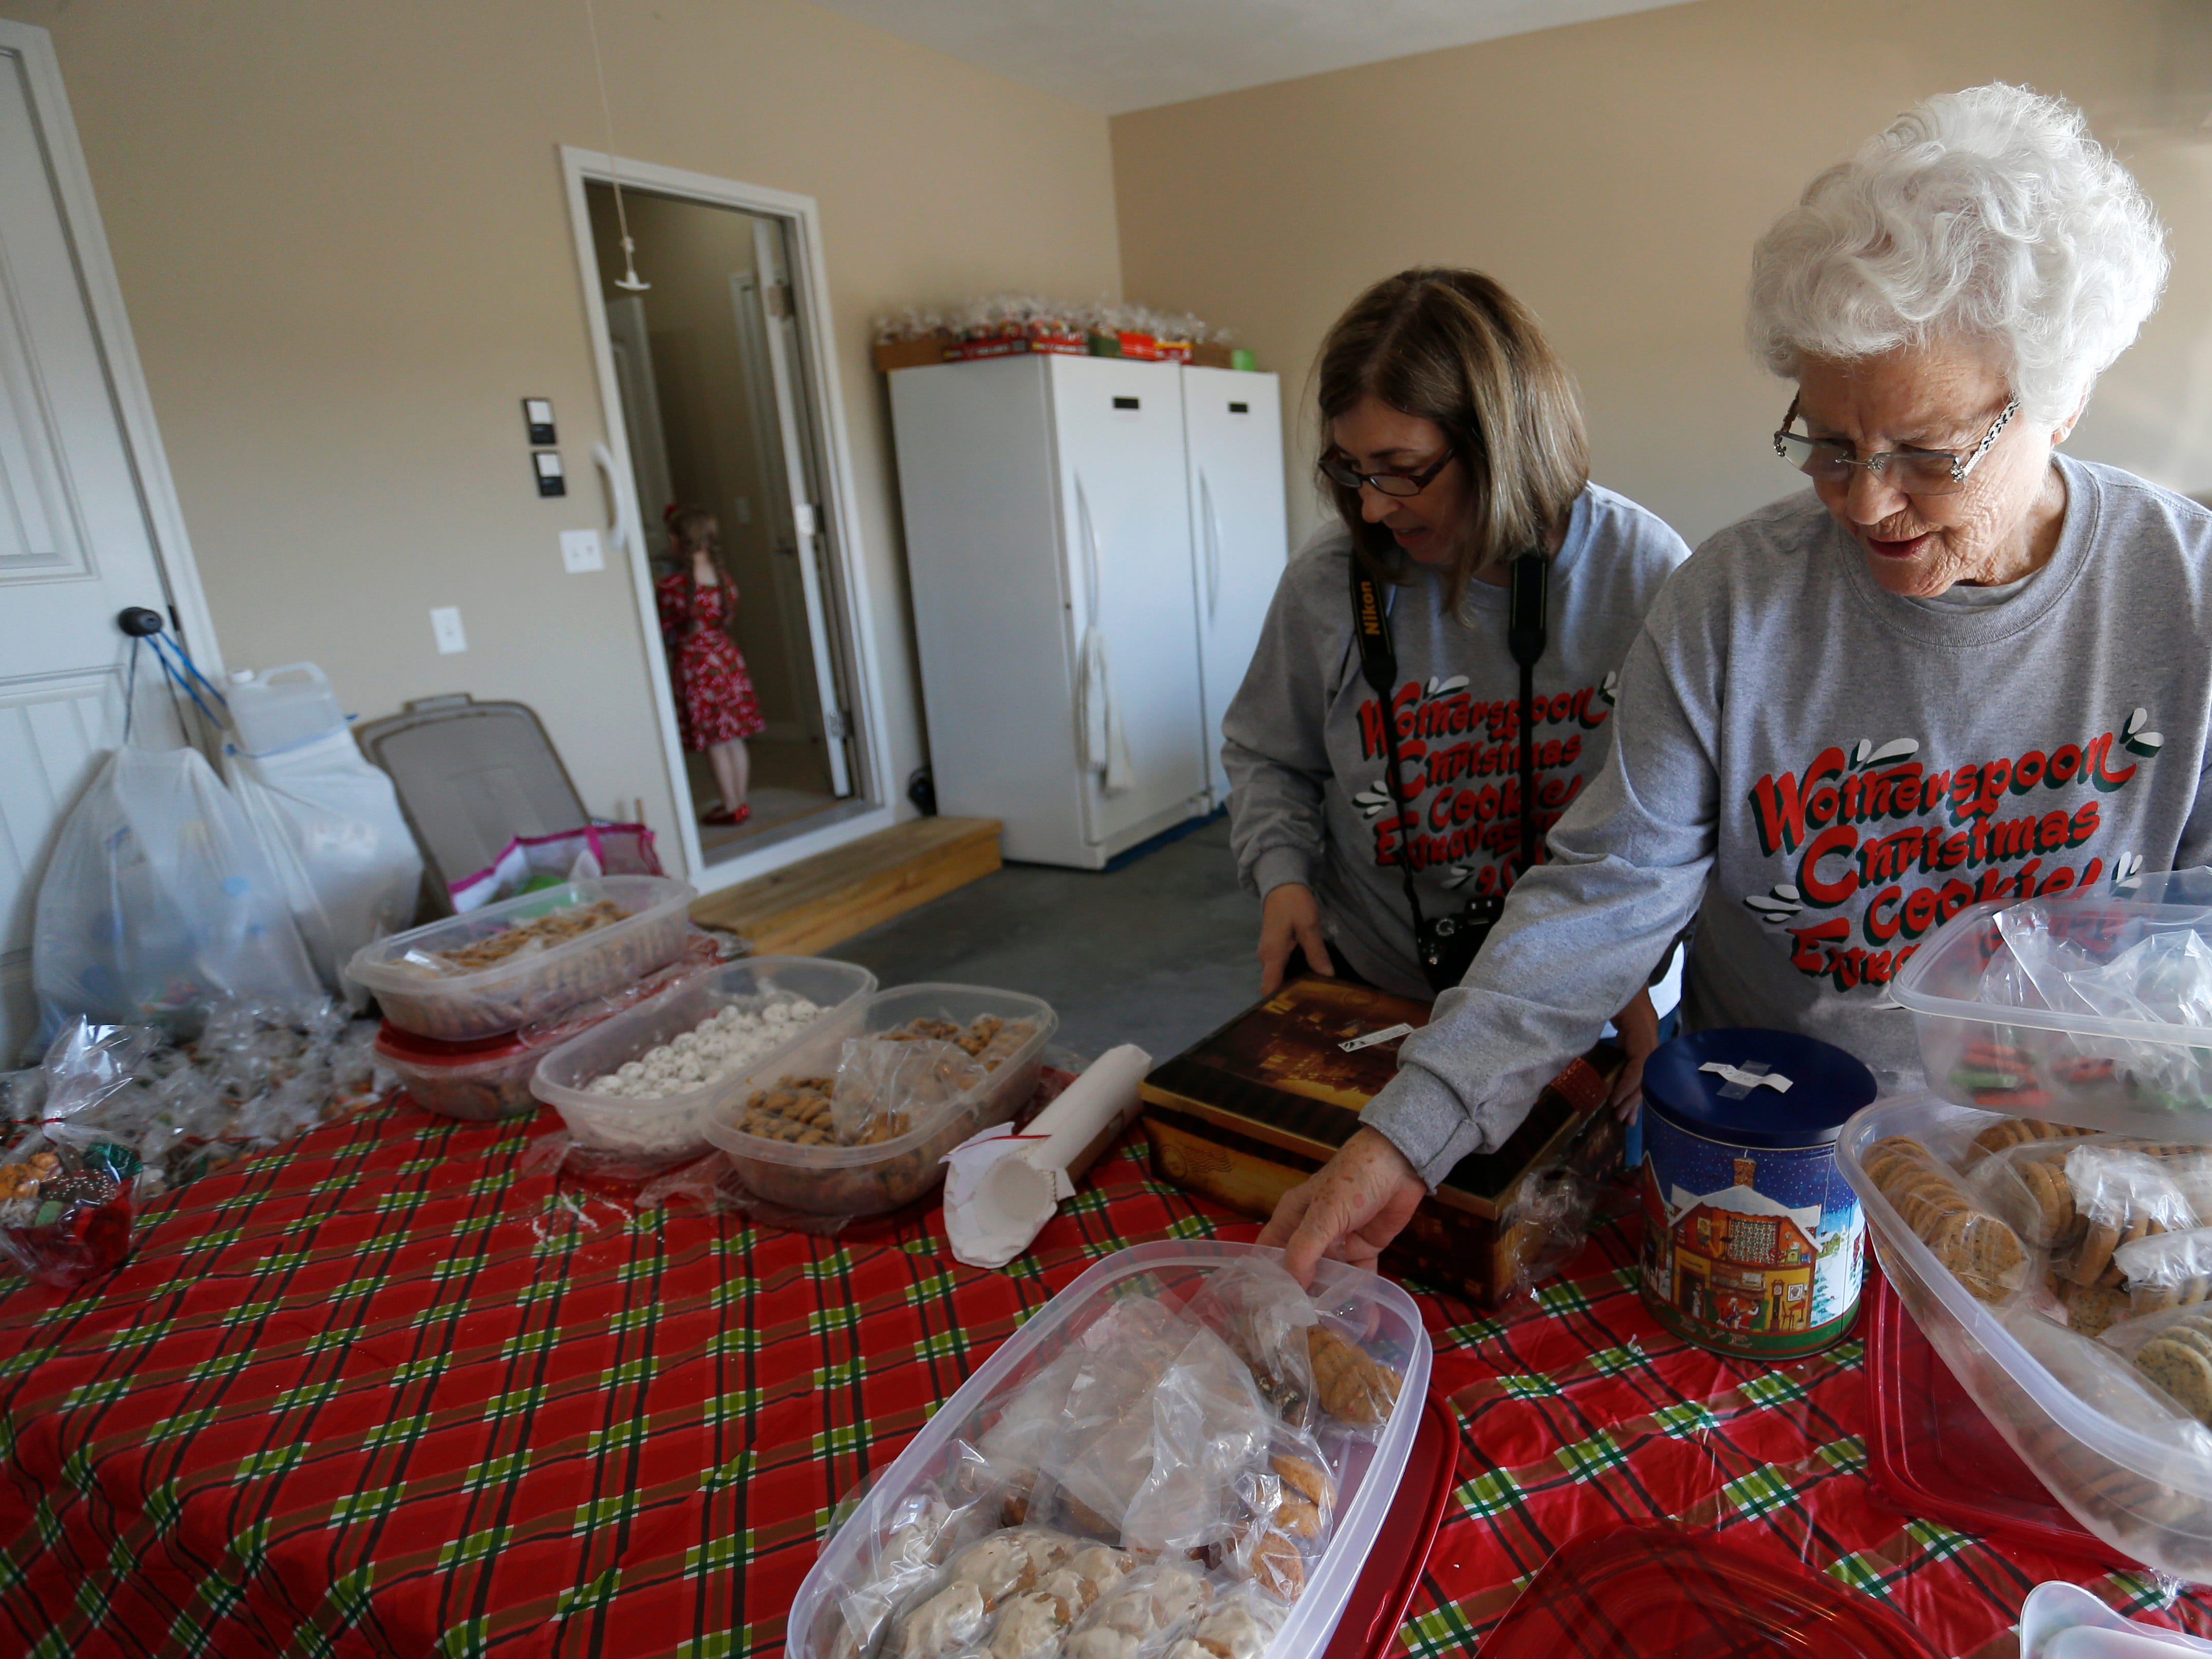 Jeanette Wotherspoon, 84, and daughter Rebecca Wotherspoon move tubs of cookies from the garage into the house as they restock some of the thousands of cookies during the annual Wotherspoon Christmas cookie extravaganza on Saturday, Dec. 15, 2018.